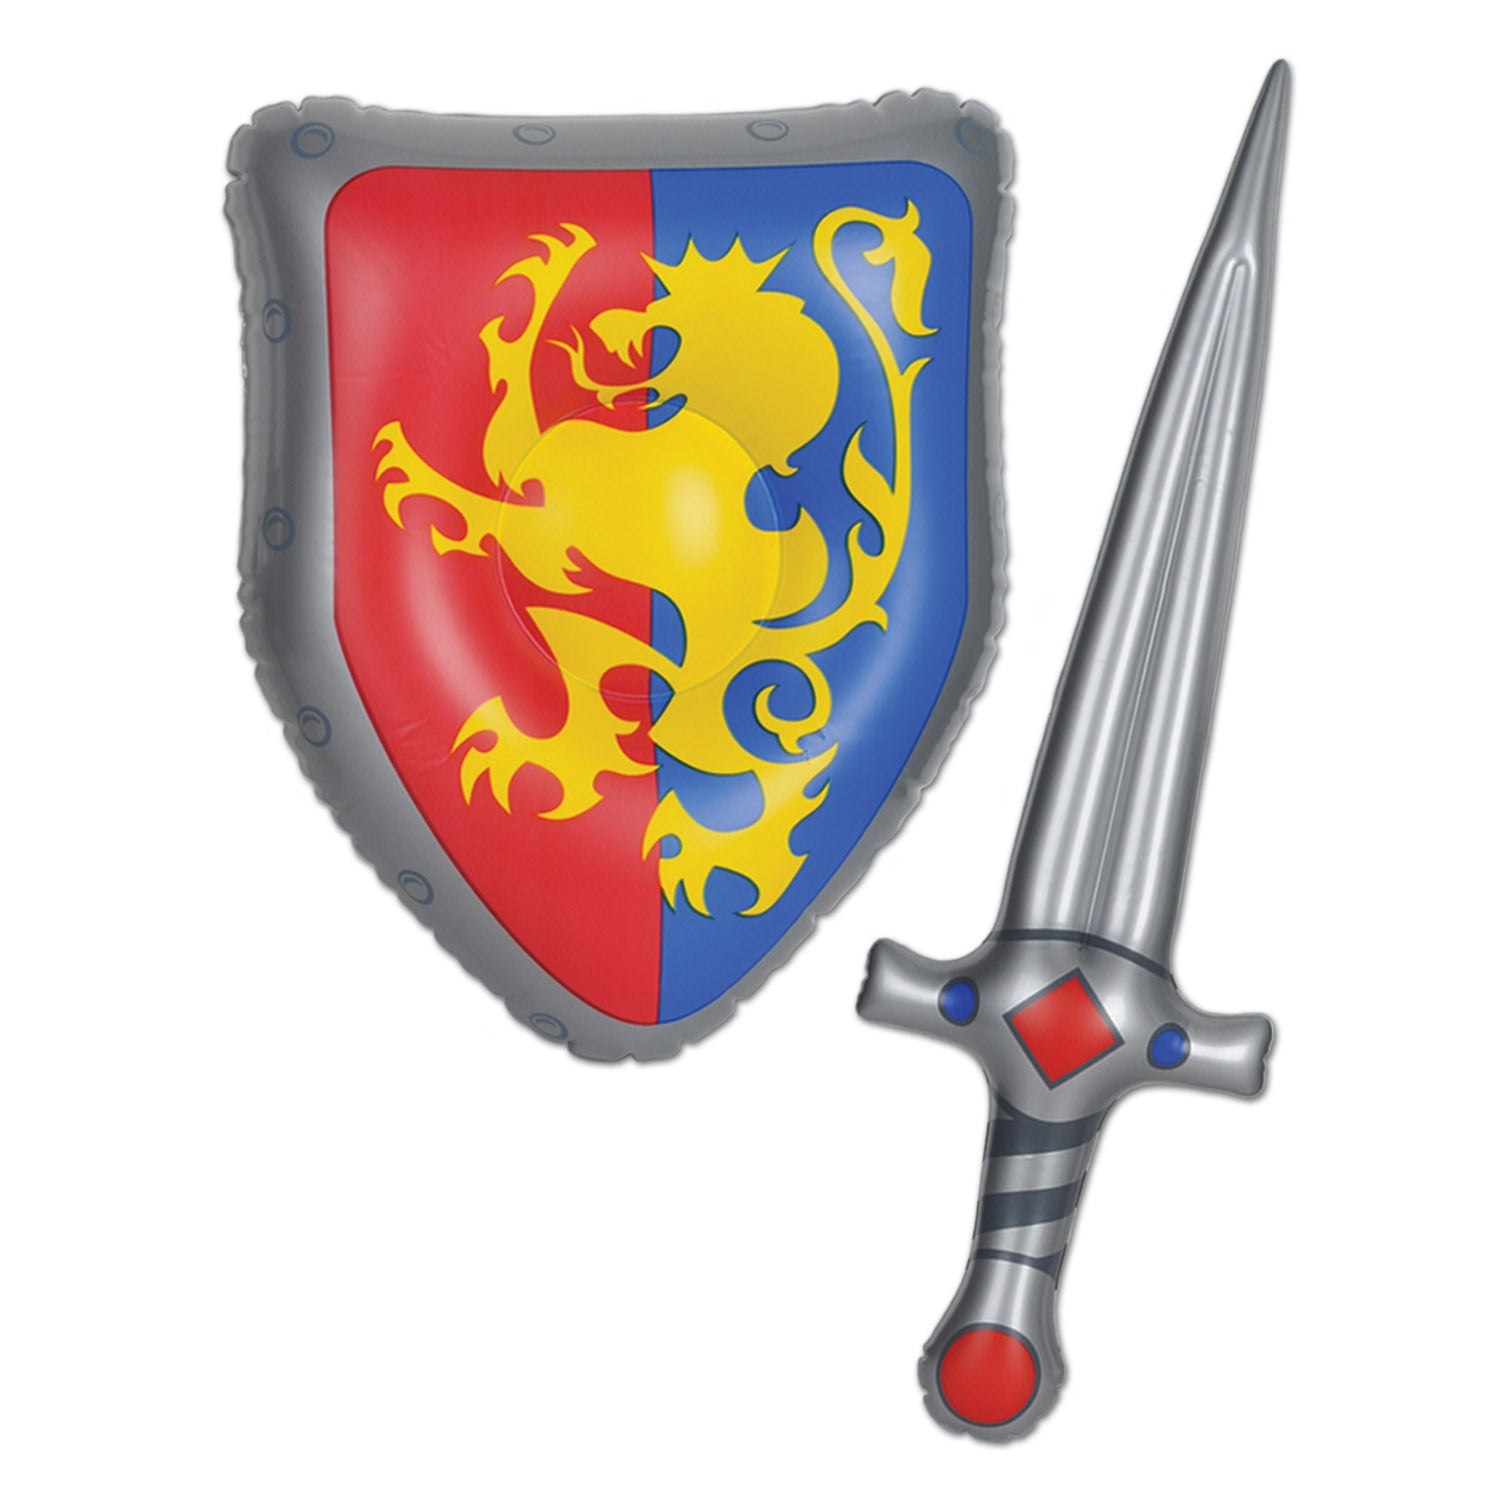 Inflatable Sword & Shield Set by Beistle - Medieval Theme Decorations